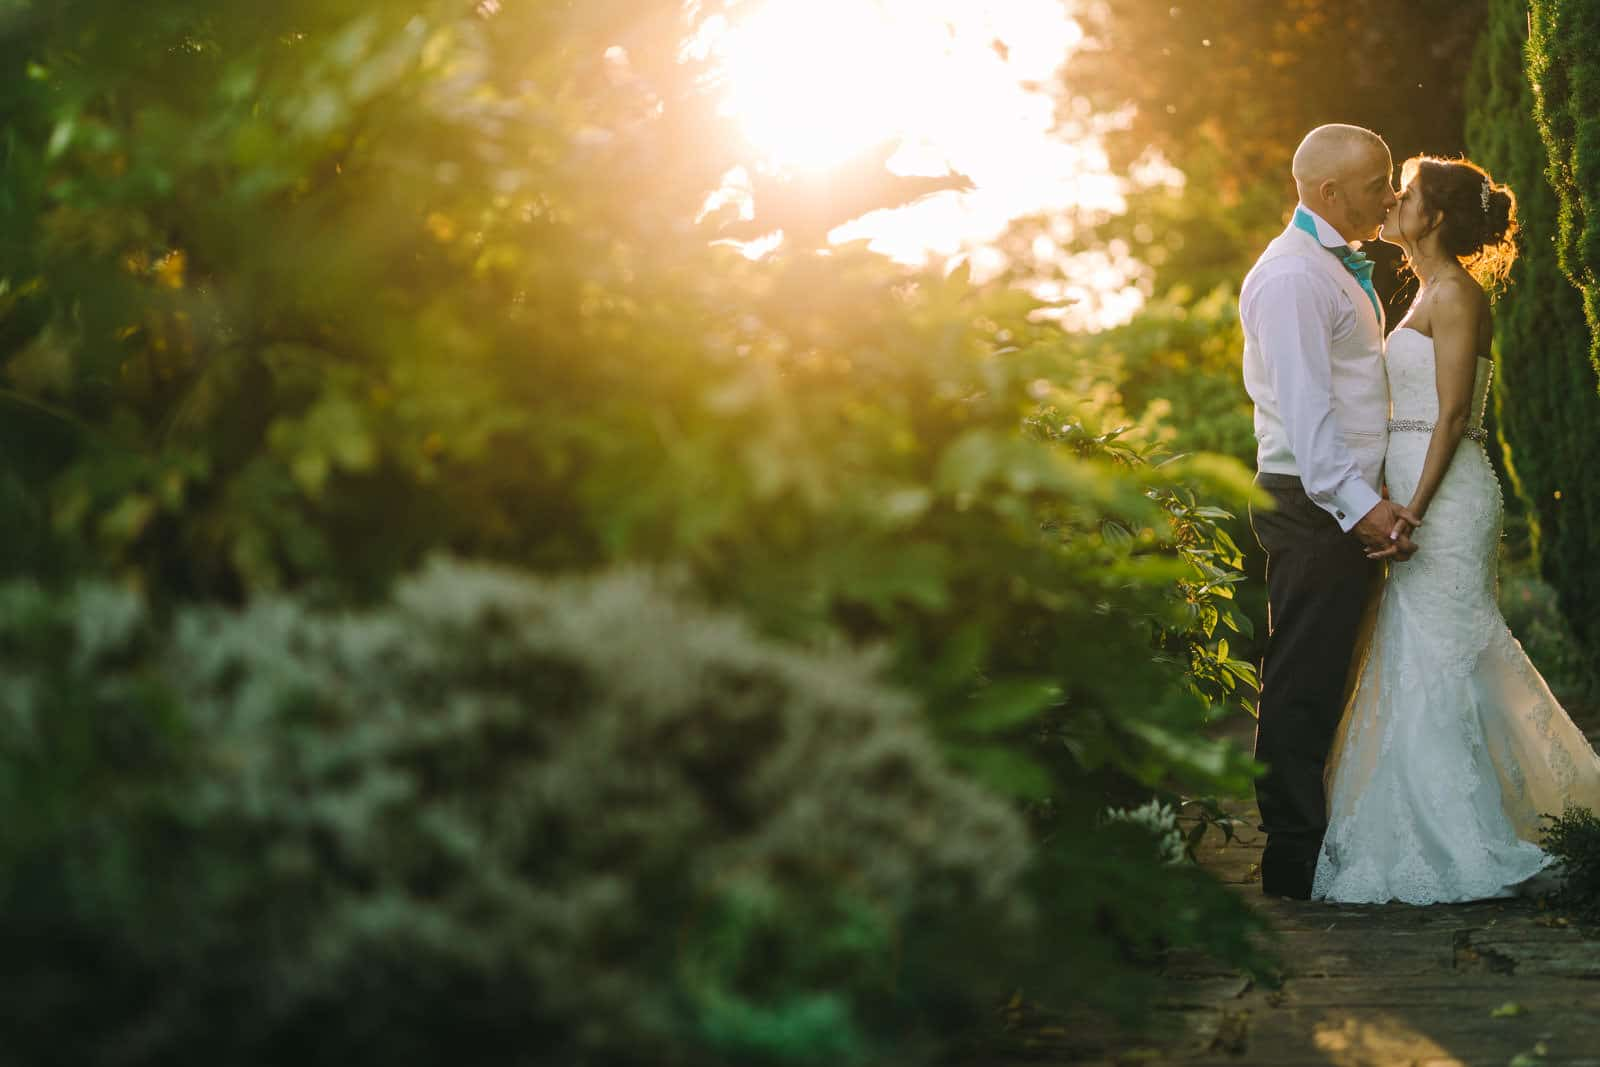 golden hour wedding photography at horwood house wedding venue in milton keynes